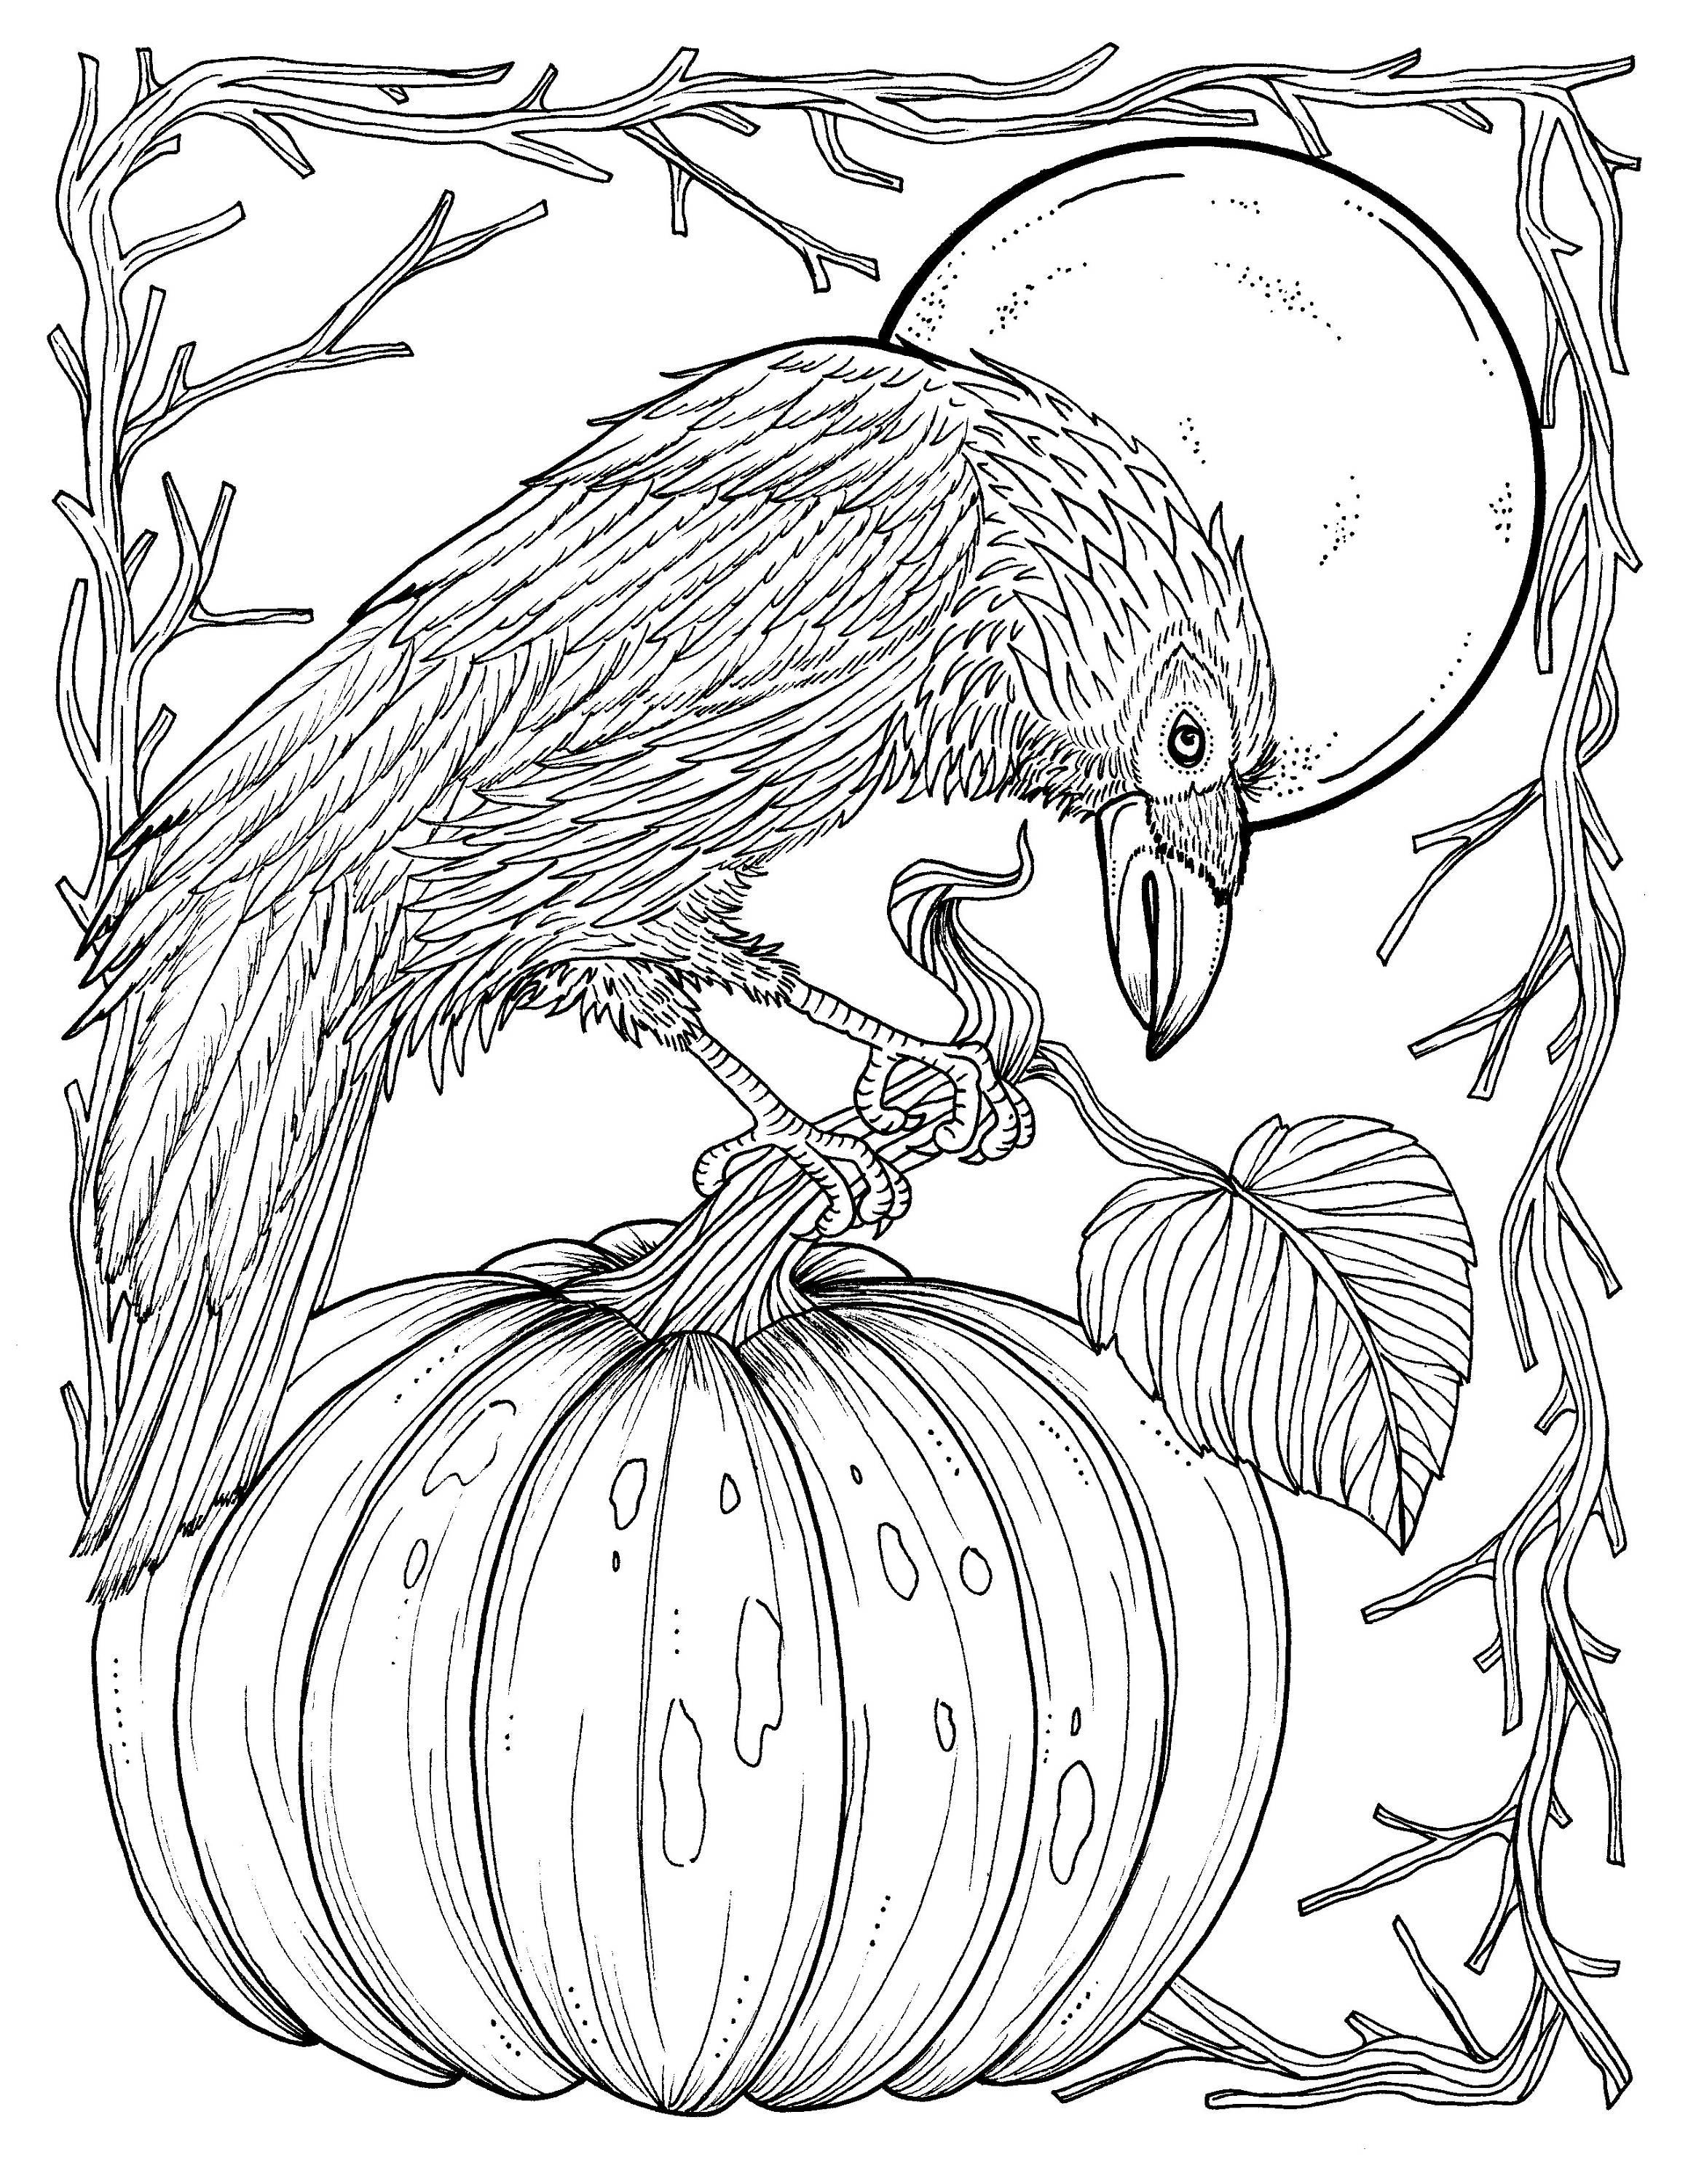 crow printable coloring pages crows coloring pages download and print crows coloring pages printable coloring crow pages